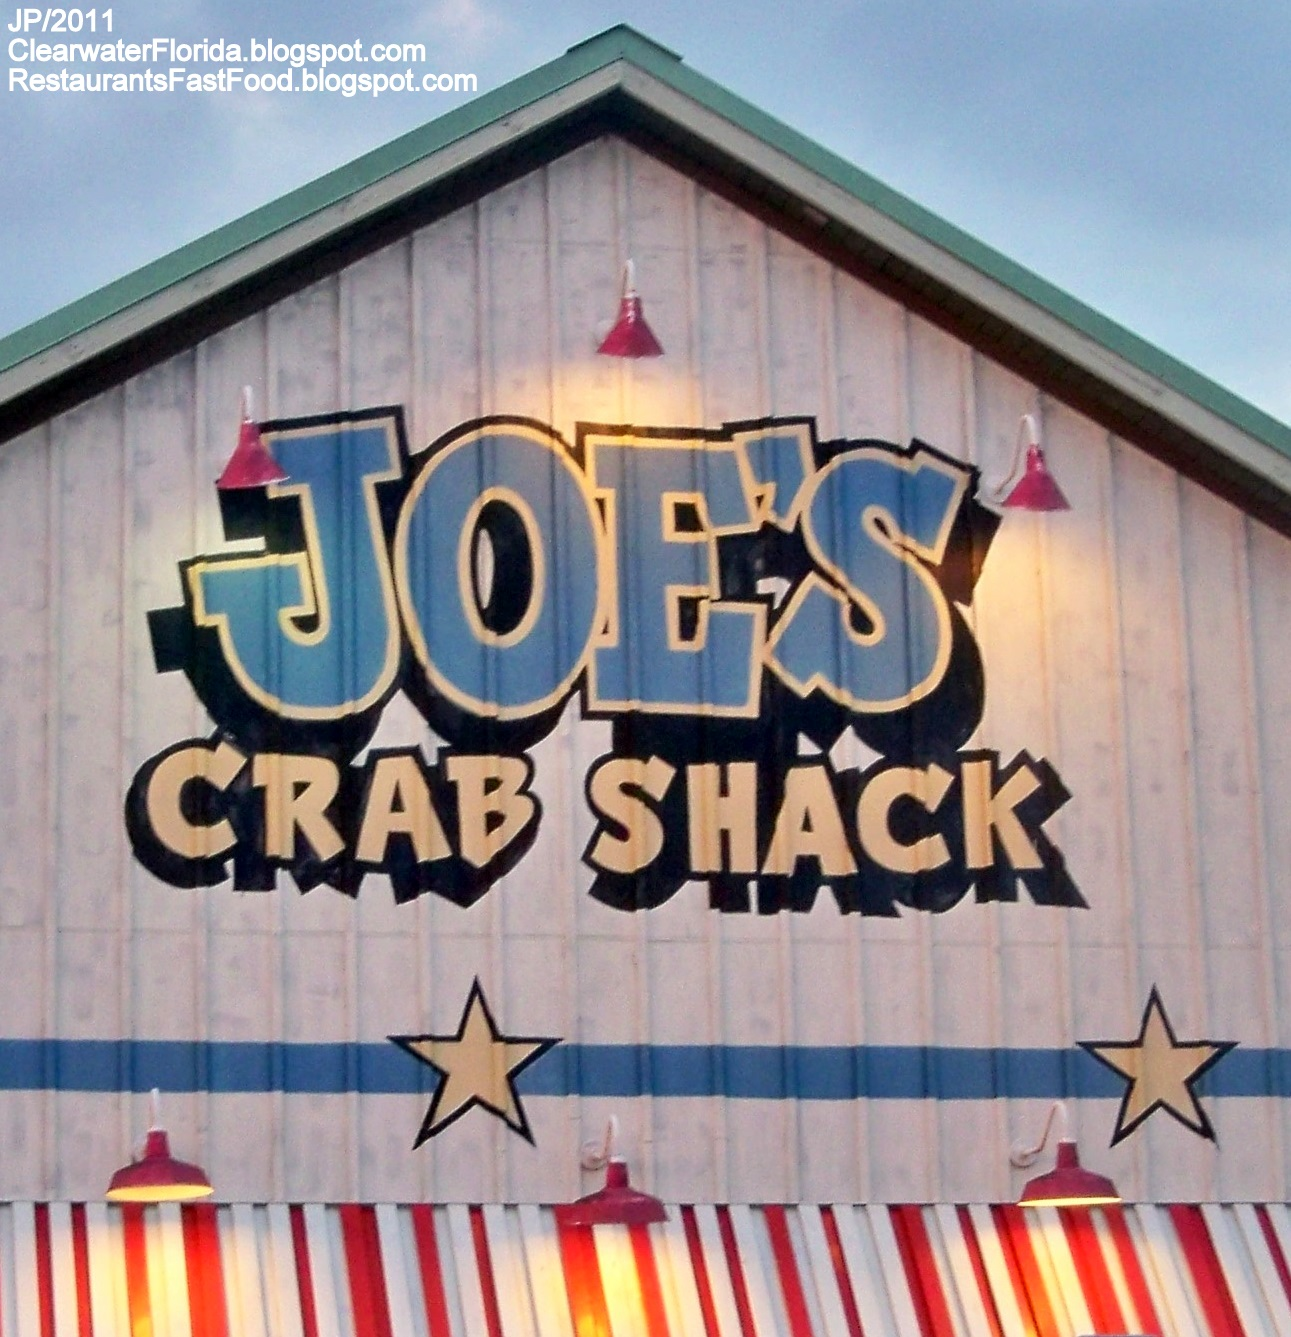 Joe S Crab Shack Clearwater Florida Seafood Restaurant Gulf To Bay Blvd Fl Pinellas County